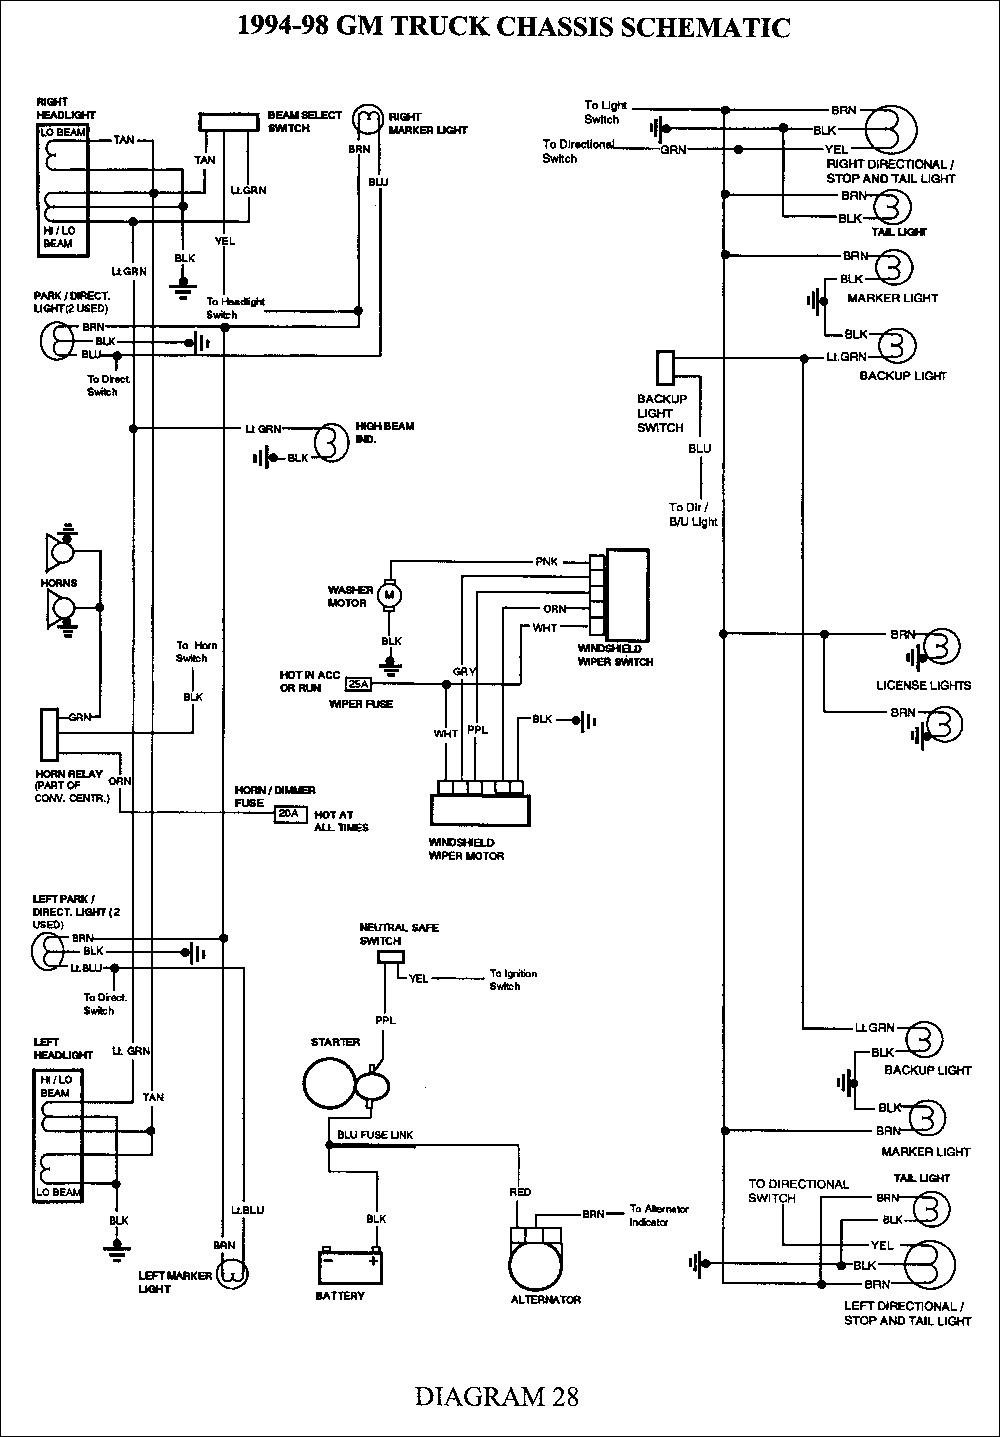 wiring diagram for 1998 chevy suburban wiring diagram img  2015 chevrolet suburban wiring diagram #5